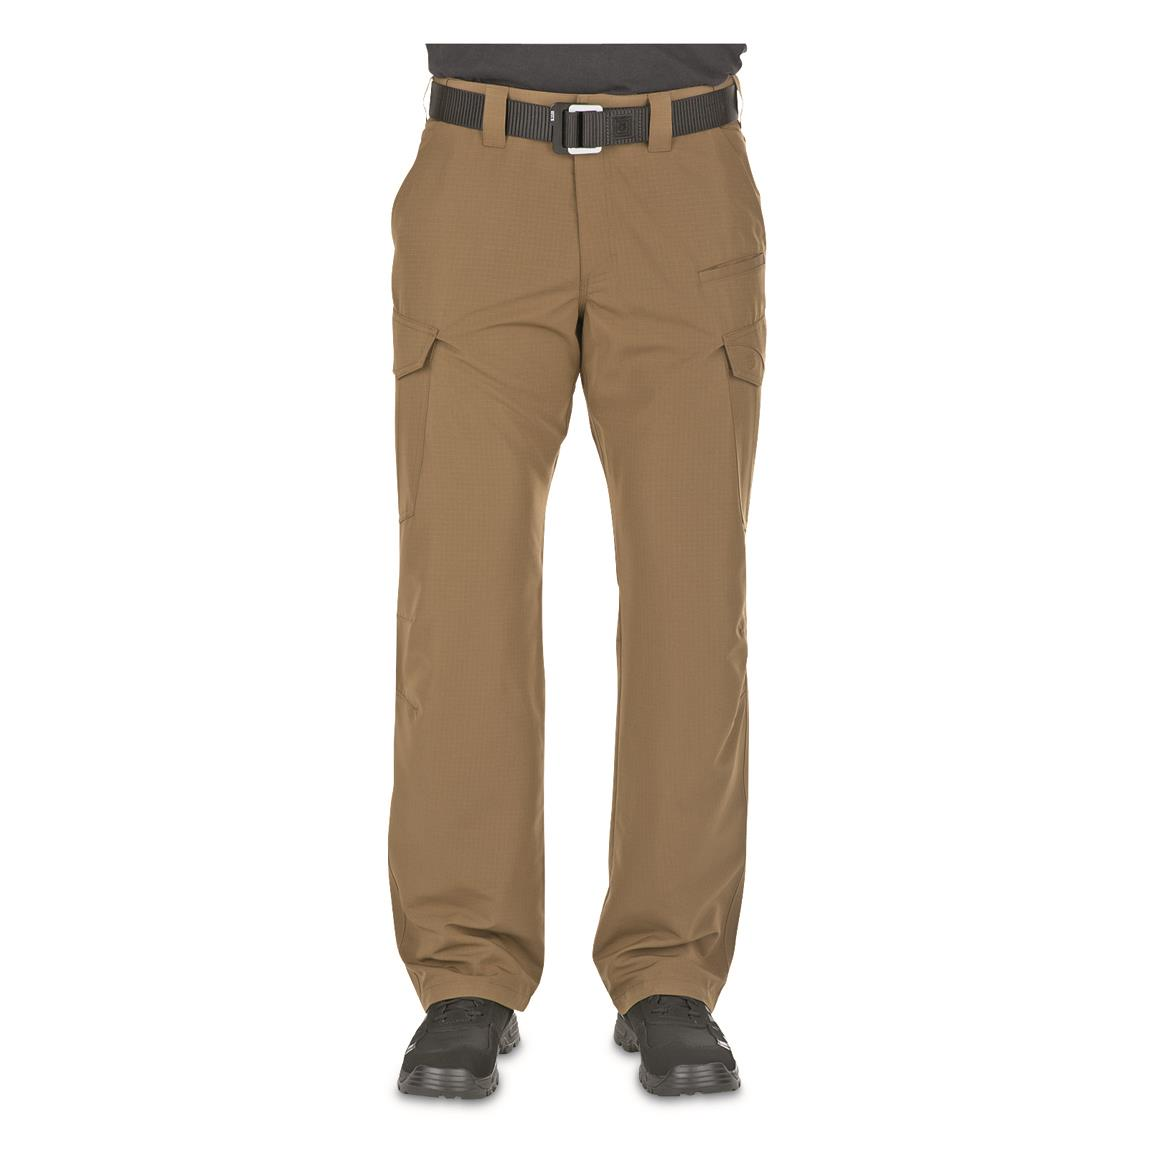 5.11 Tactical Fast-Tac Men's Cargo Pants, Khaki